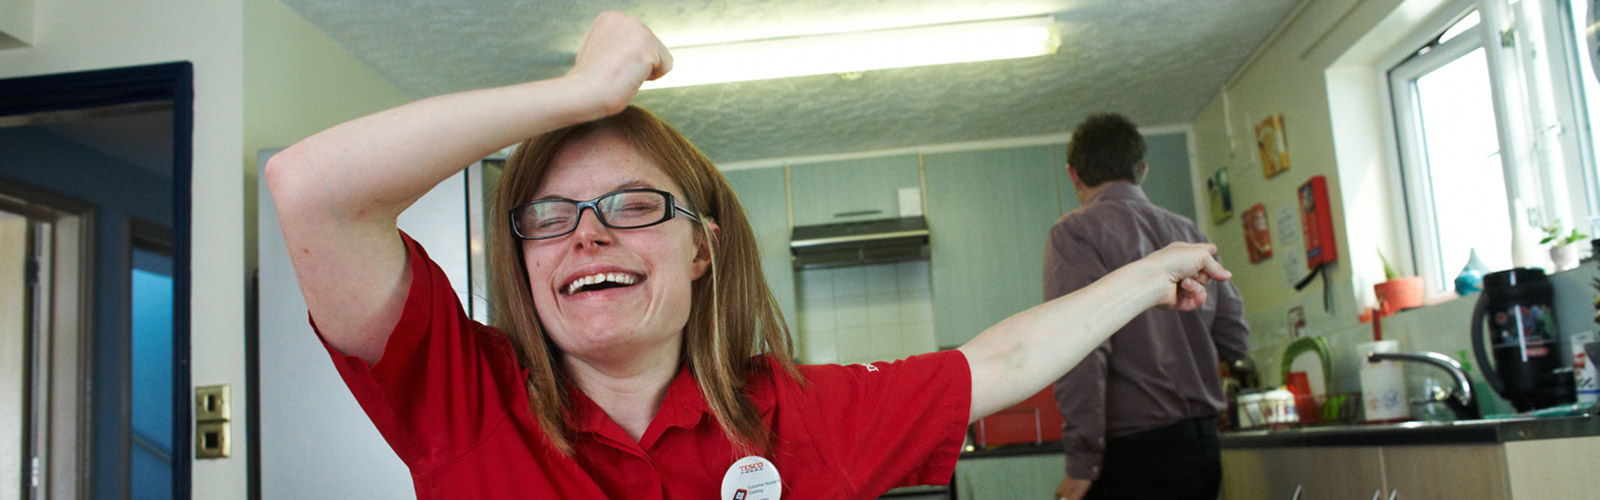 A young woman laughing with her arms in the air